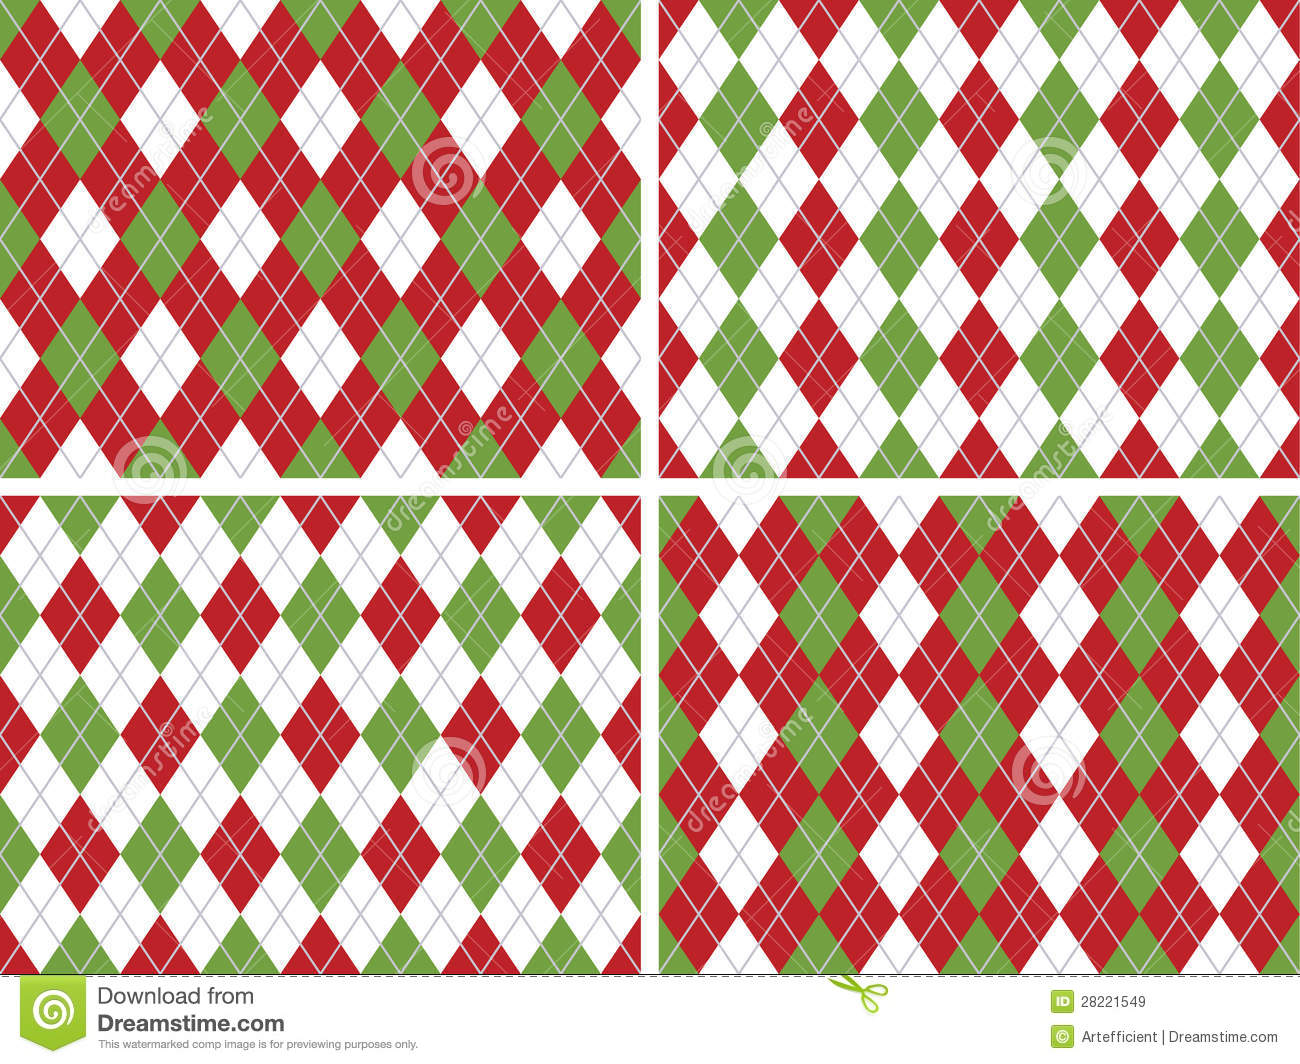 Seamless Christmas Argyle Patterns In Green And Red Royalty Free ...